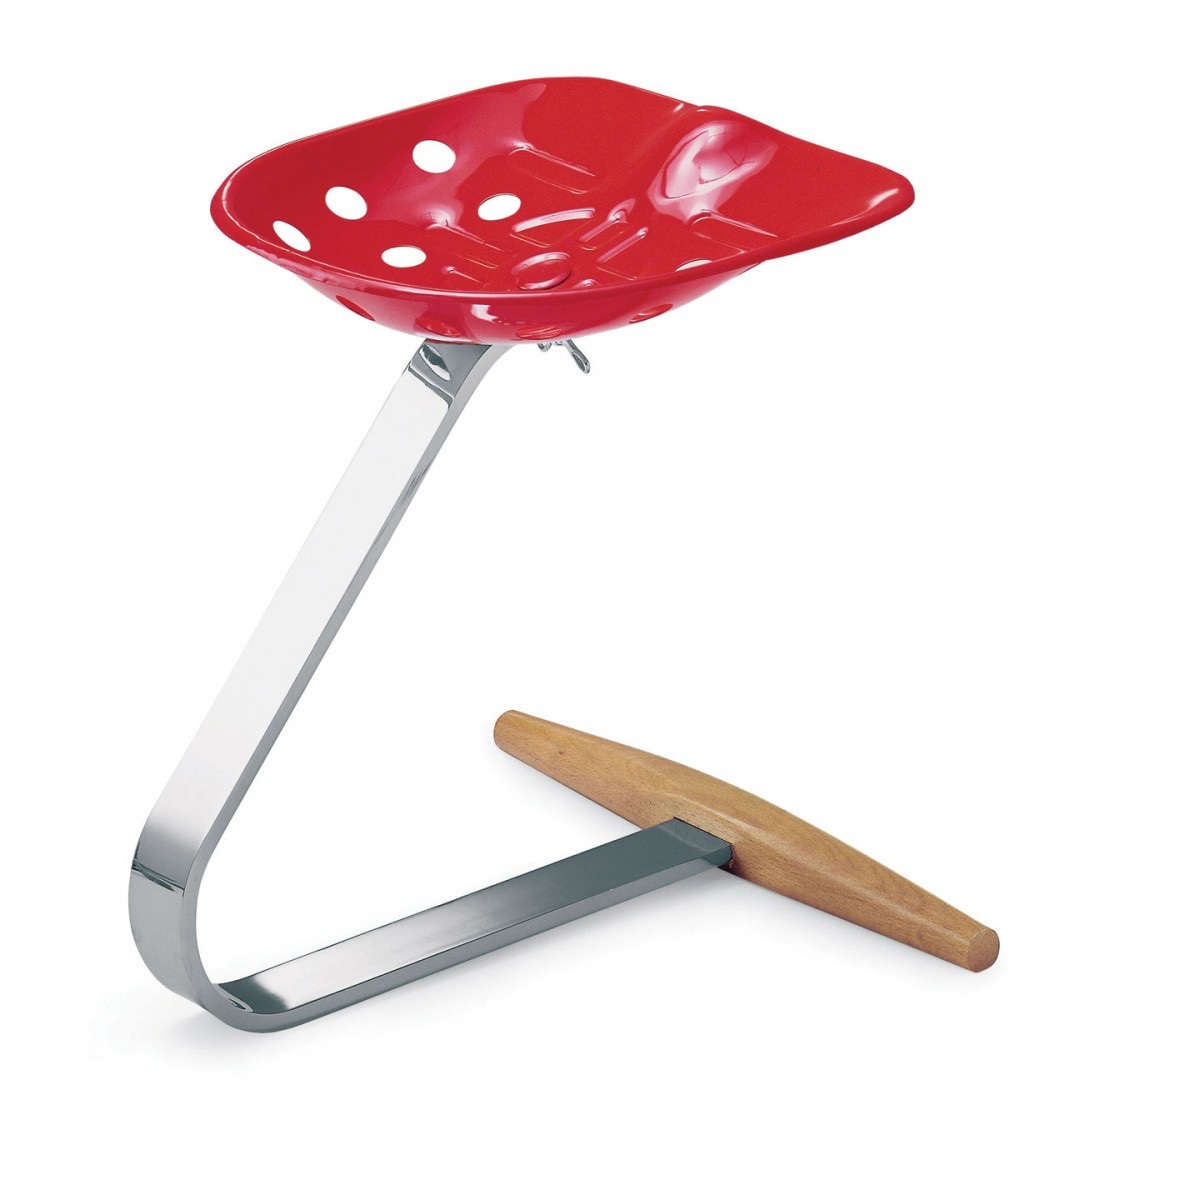 Mezzadro stool is also known fondly as the Tractor stool.